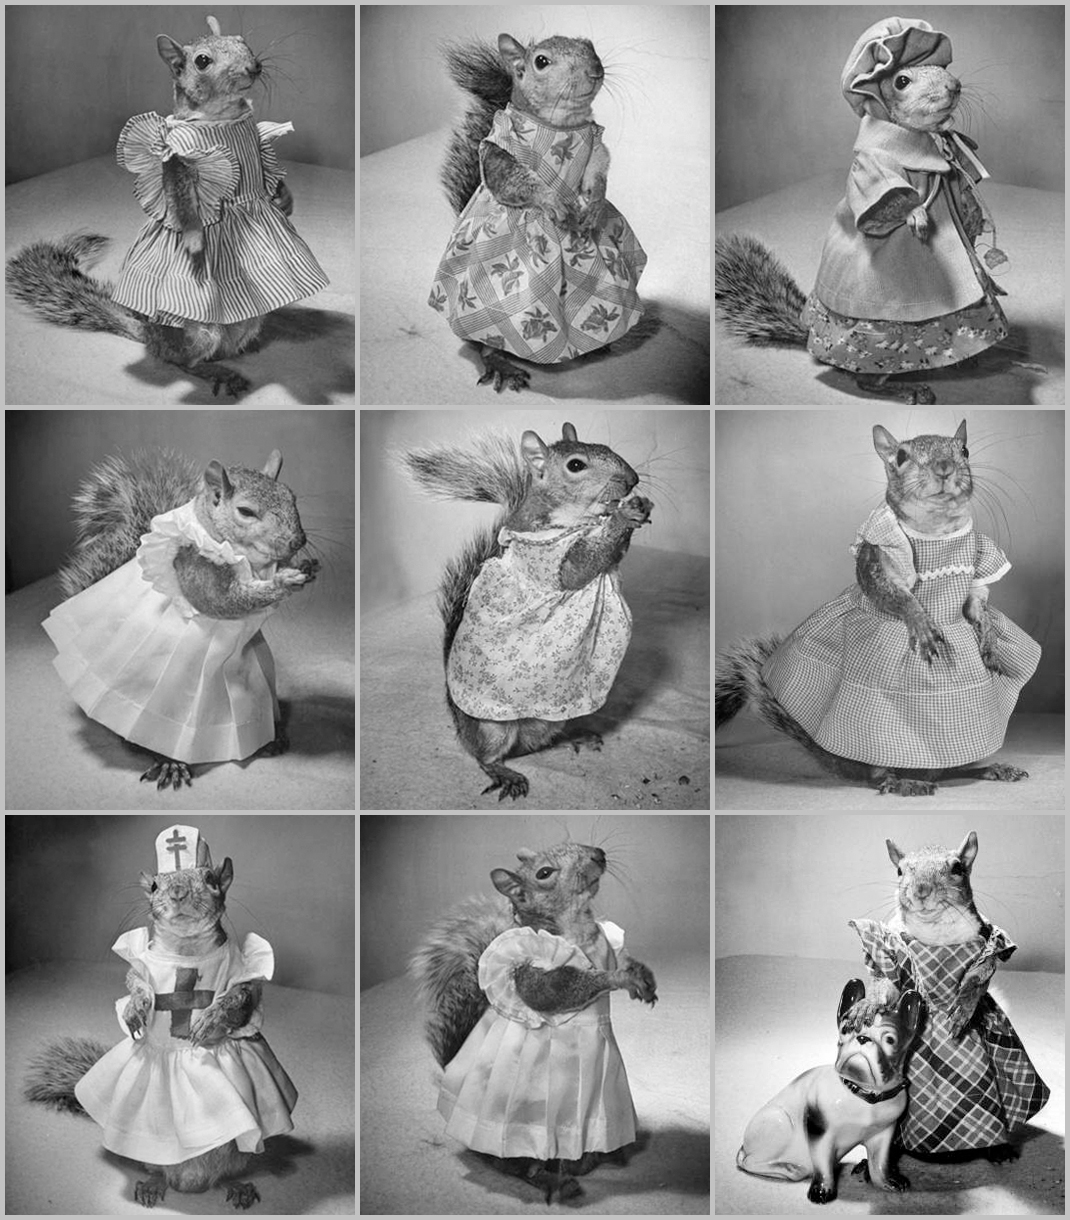 https://commons.wikimedia.org/wiki/File:Pet-Squirrel-Grid-LIFE-1944.jpg